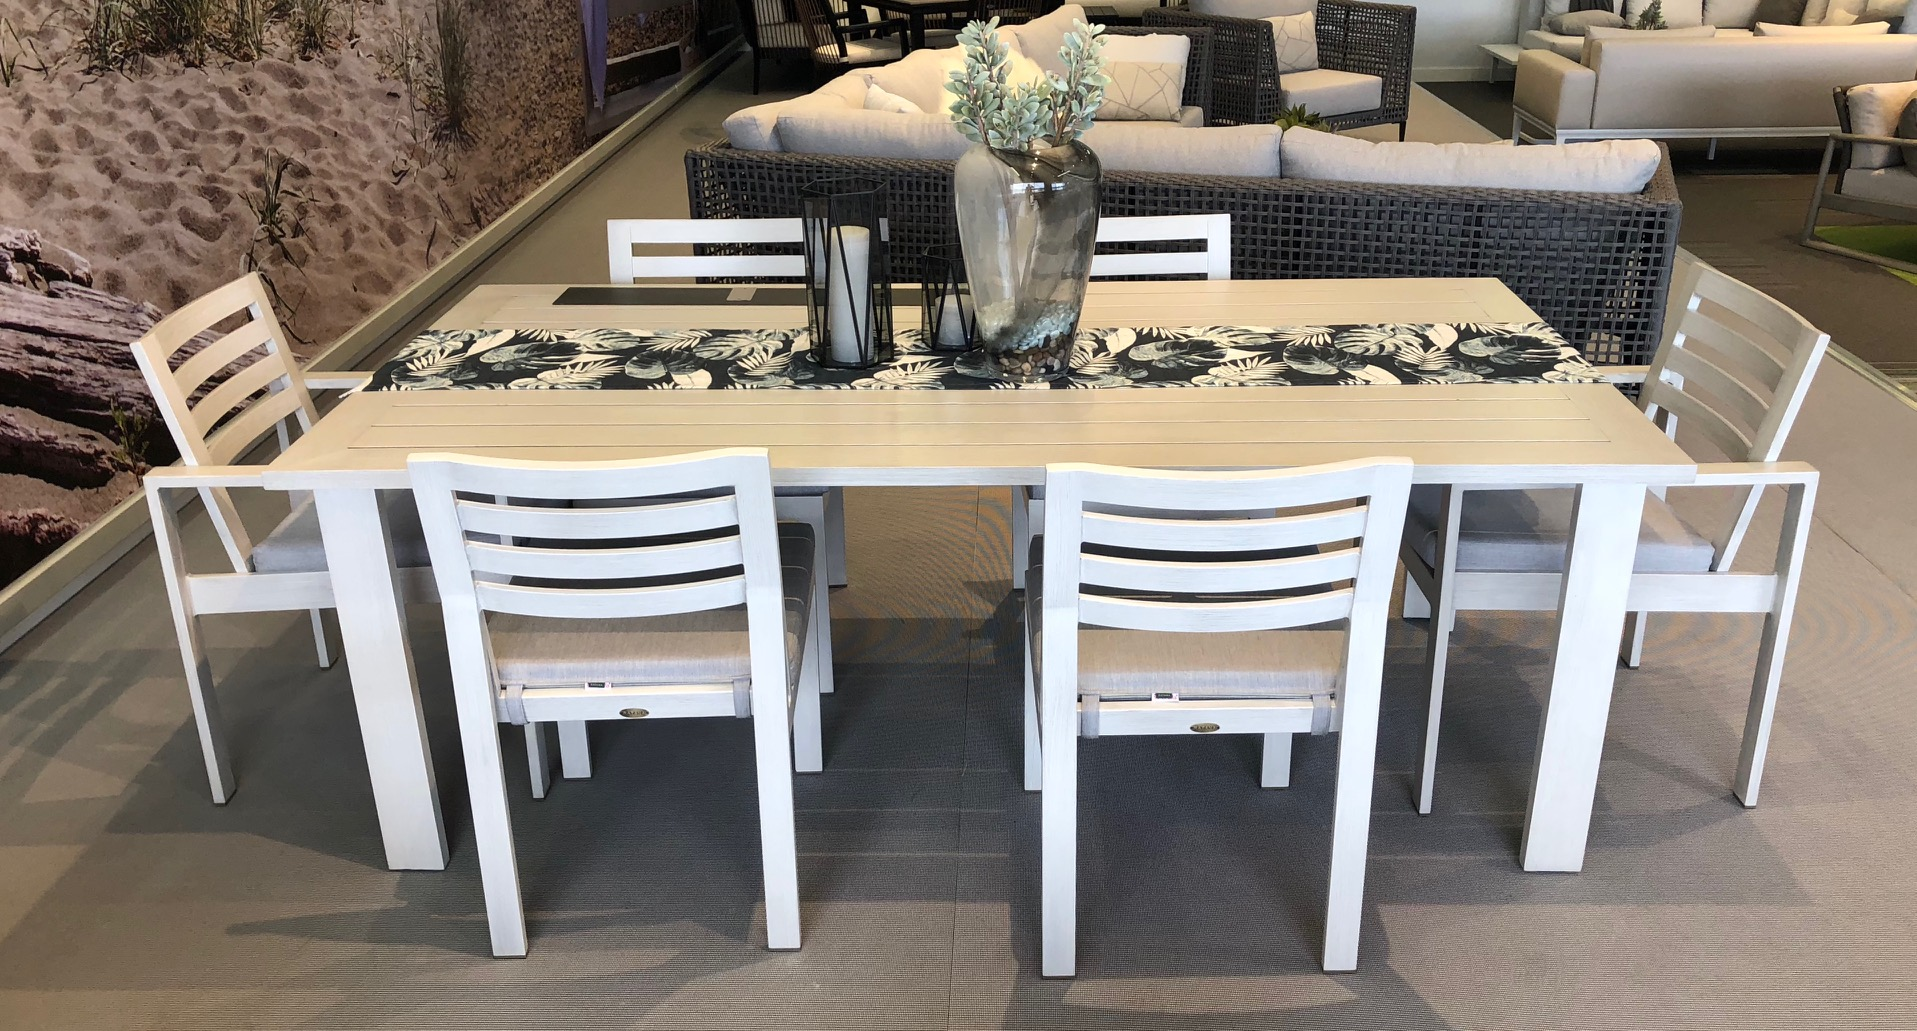 The Element Dining Table with 6 chairs in a white metal frame and grey cushions.